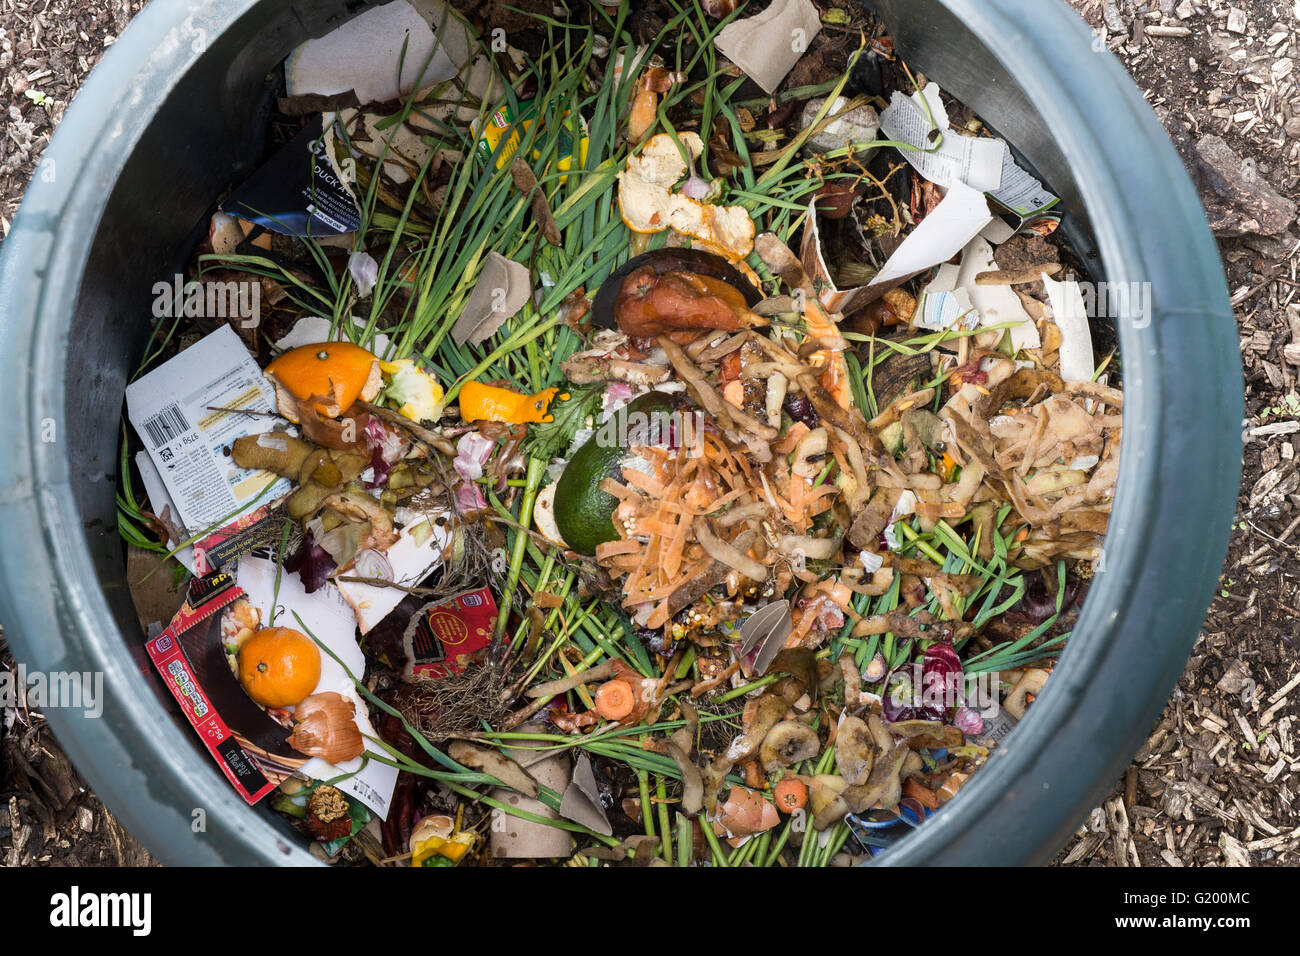 interior of a plastic compost bin for home use with food scraps and stock photo 104492092 alamy. Black Bedroom Furniture Sets. Home Design Ideas